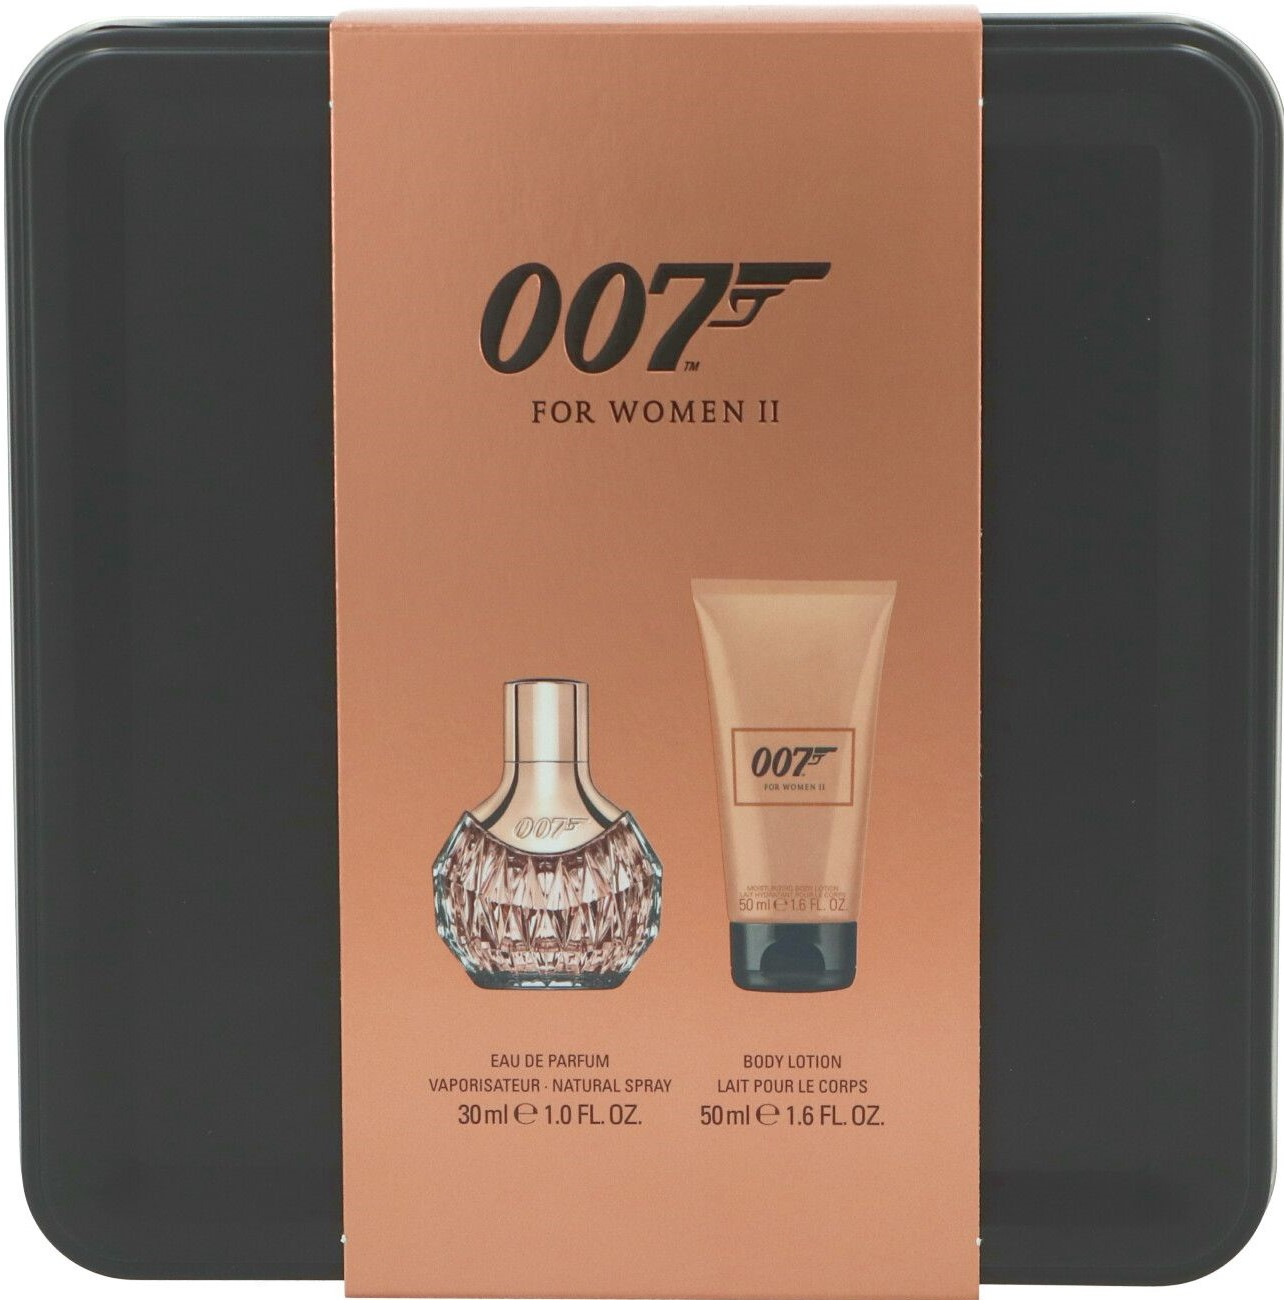 Productafbeelding van James Bond 007 for Women II Geschenkset